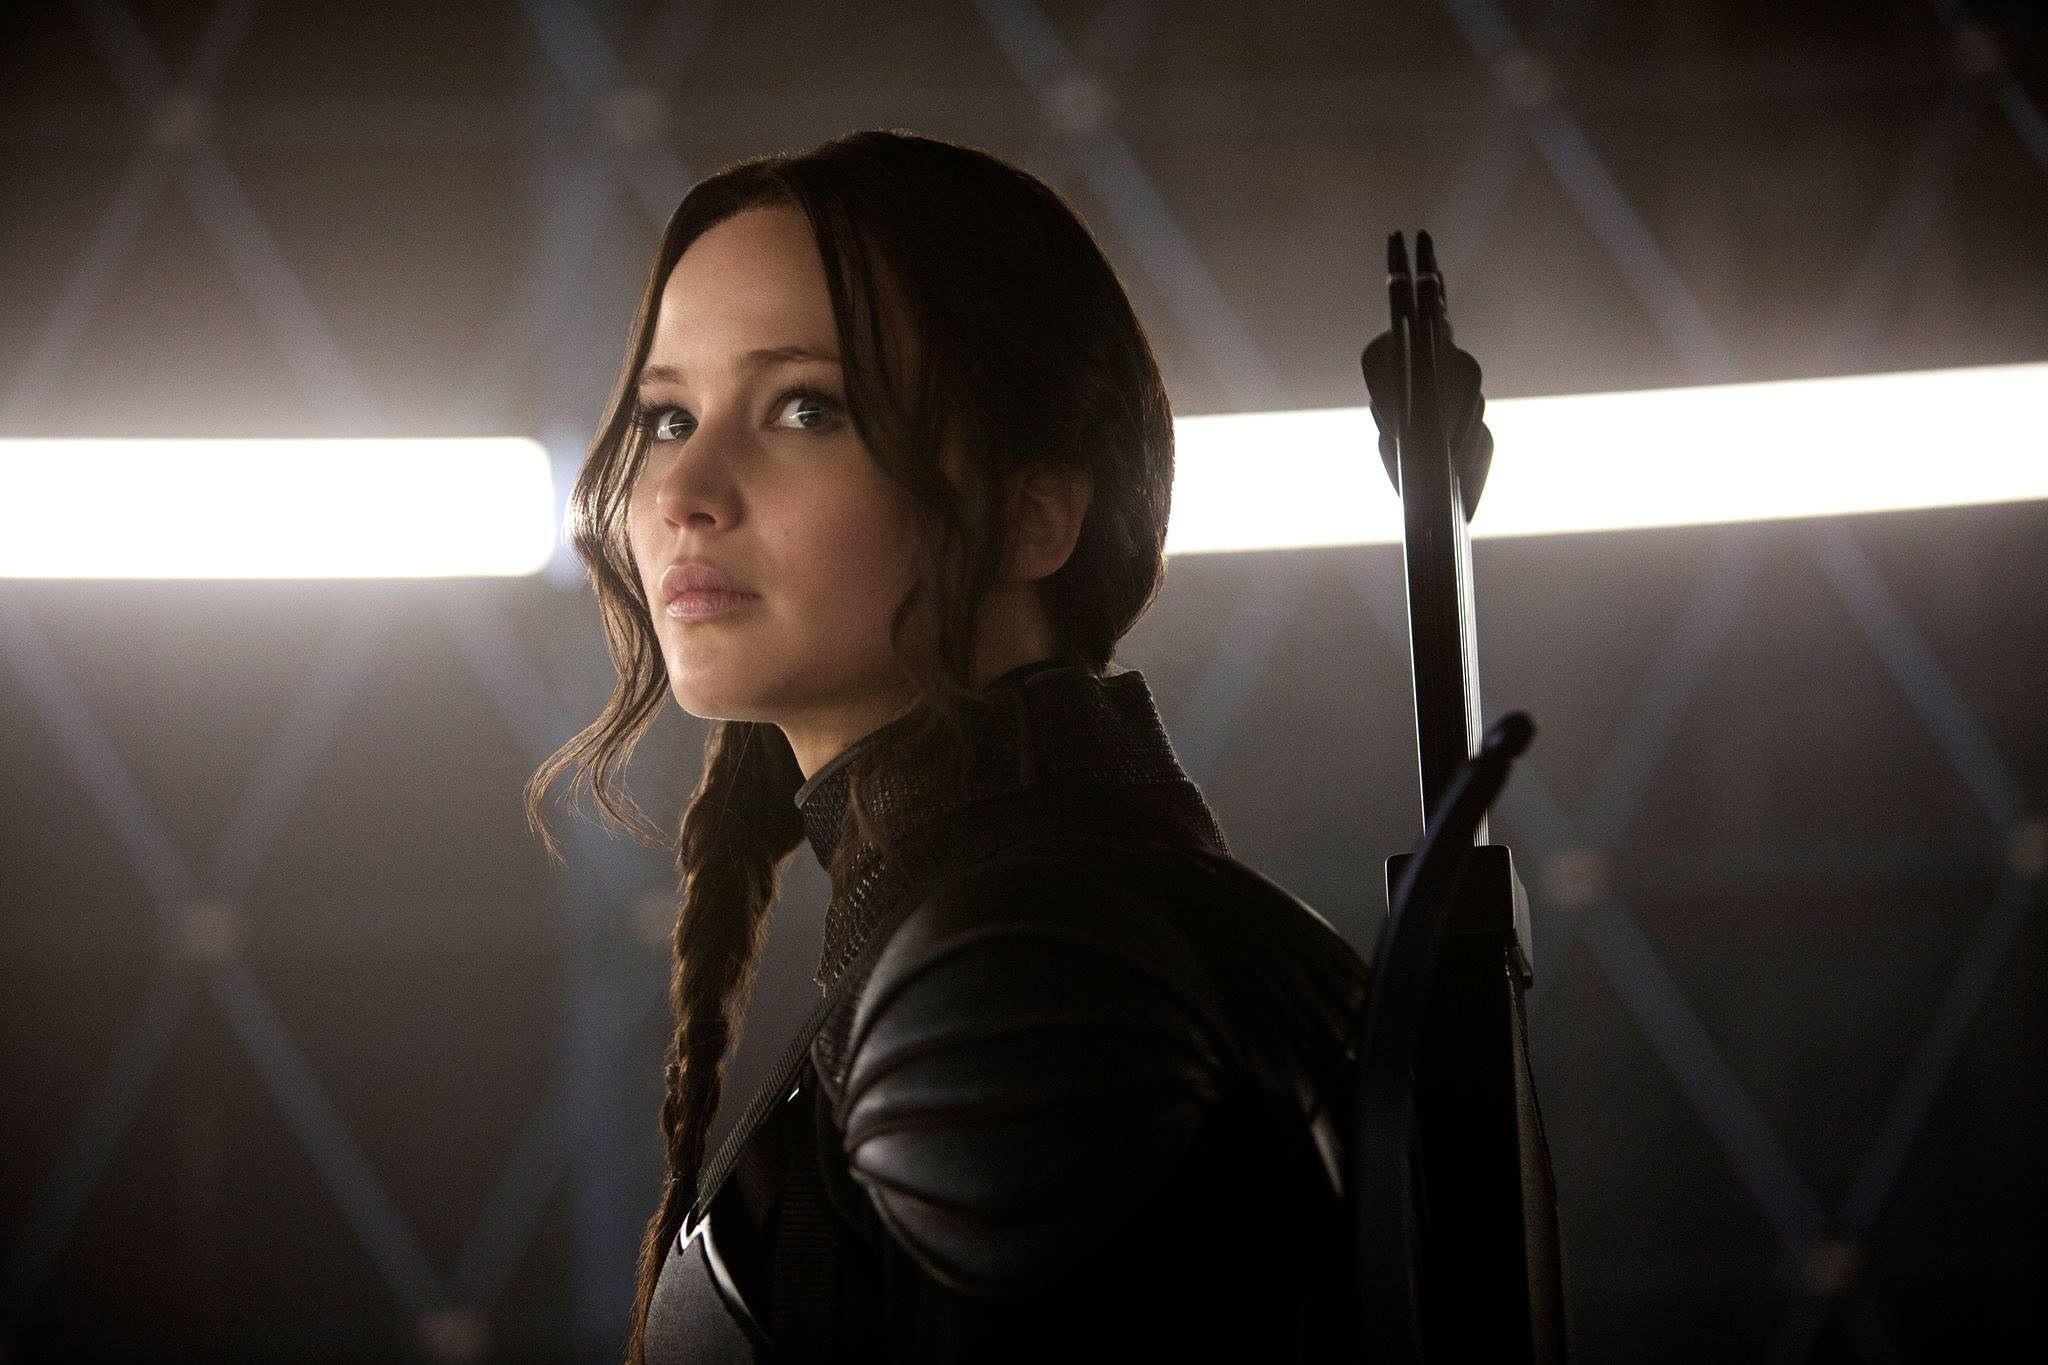 The Hunger Games: Mockingjay - Part 2 Free